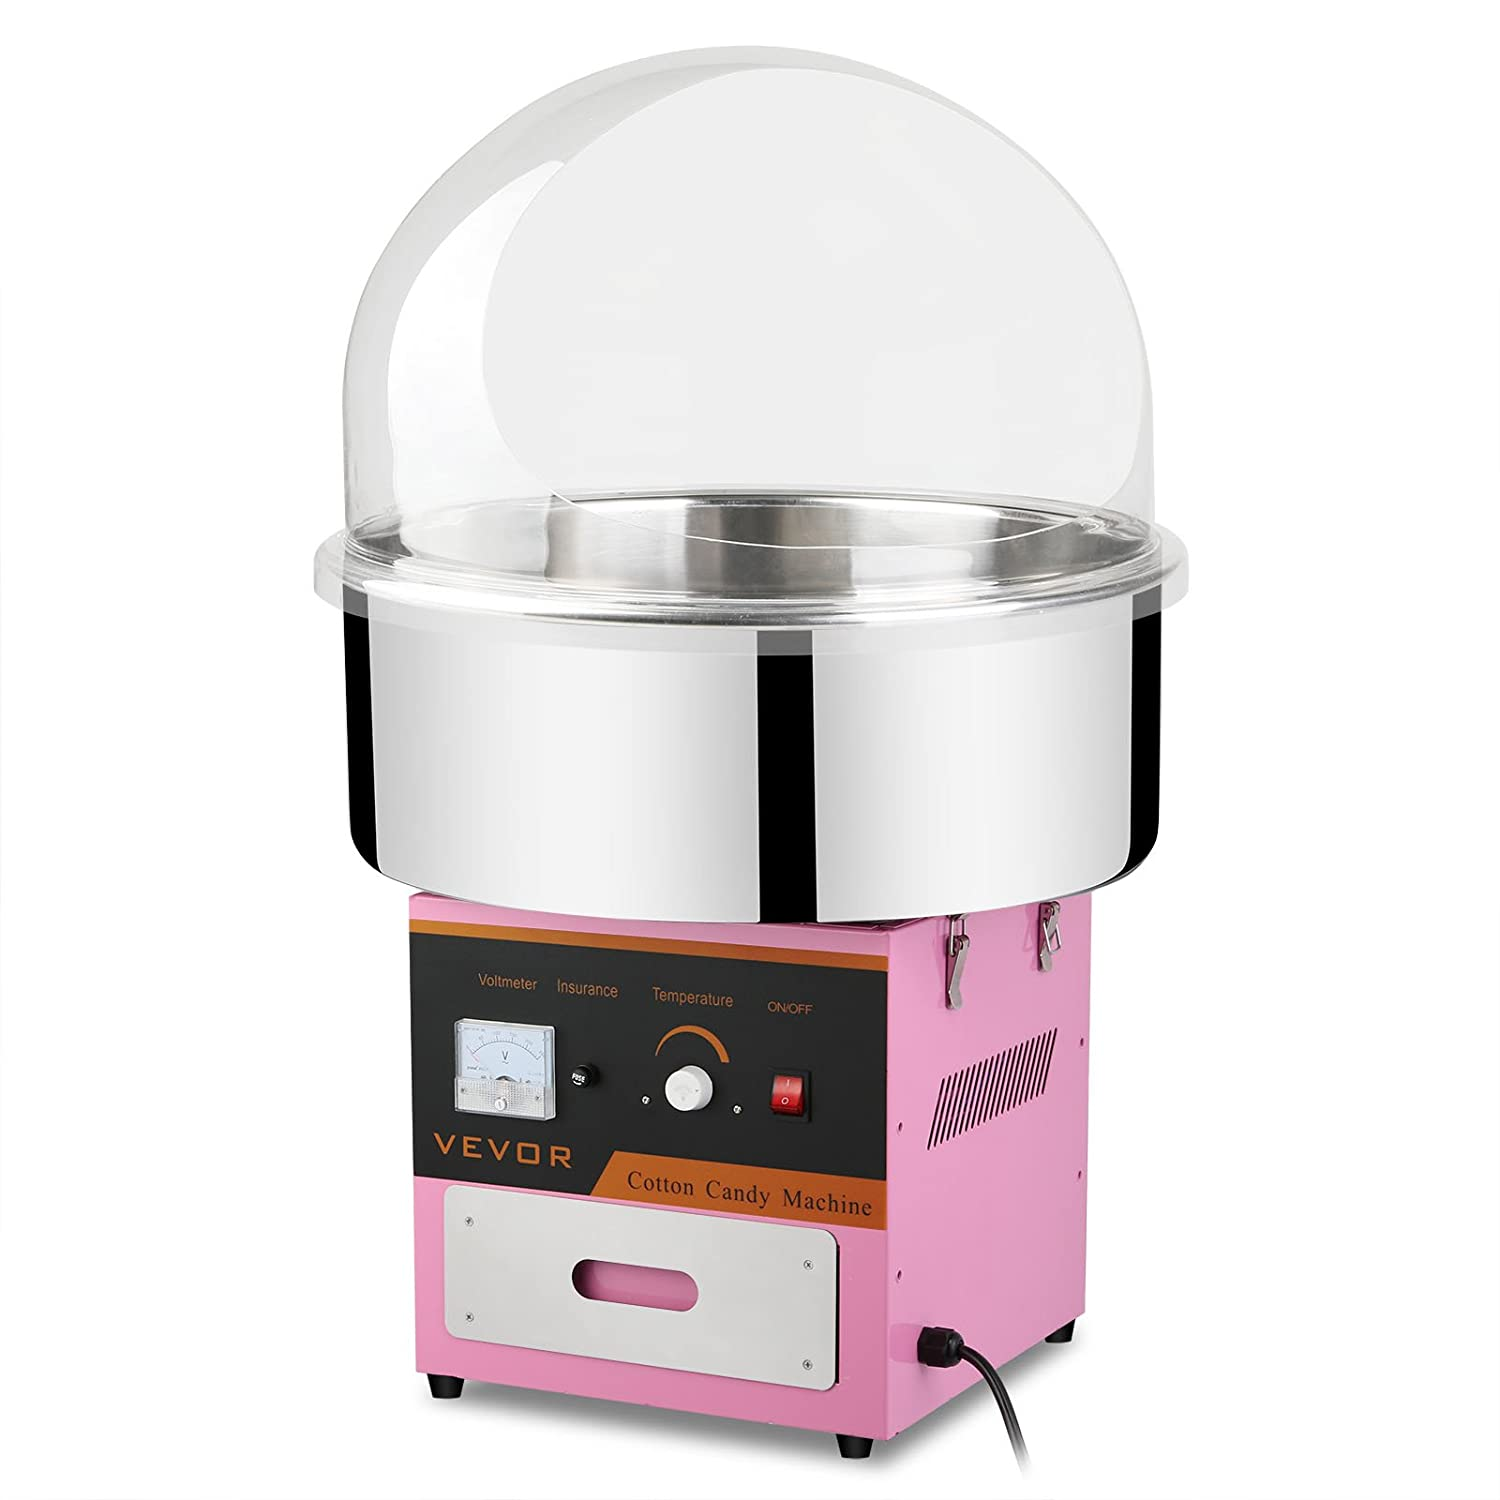 Cotton Candy Machine with Bubble Cover